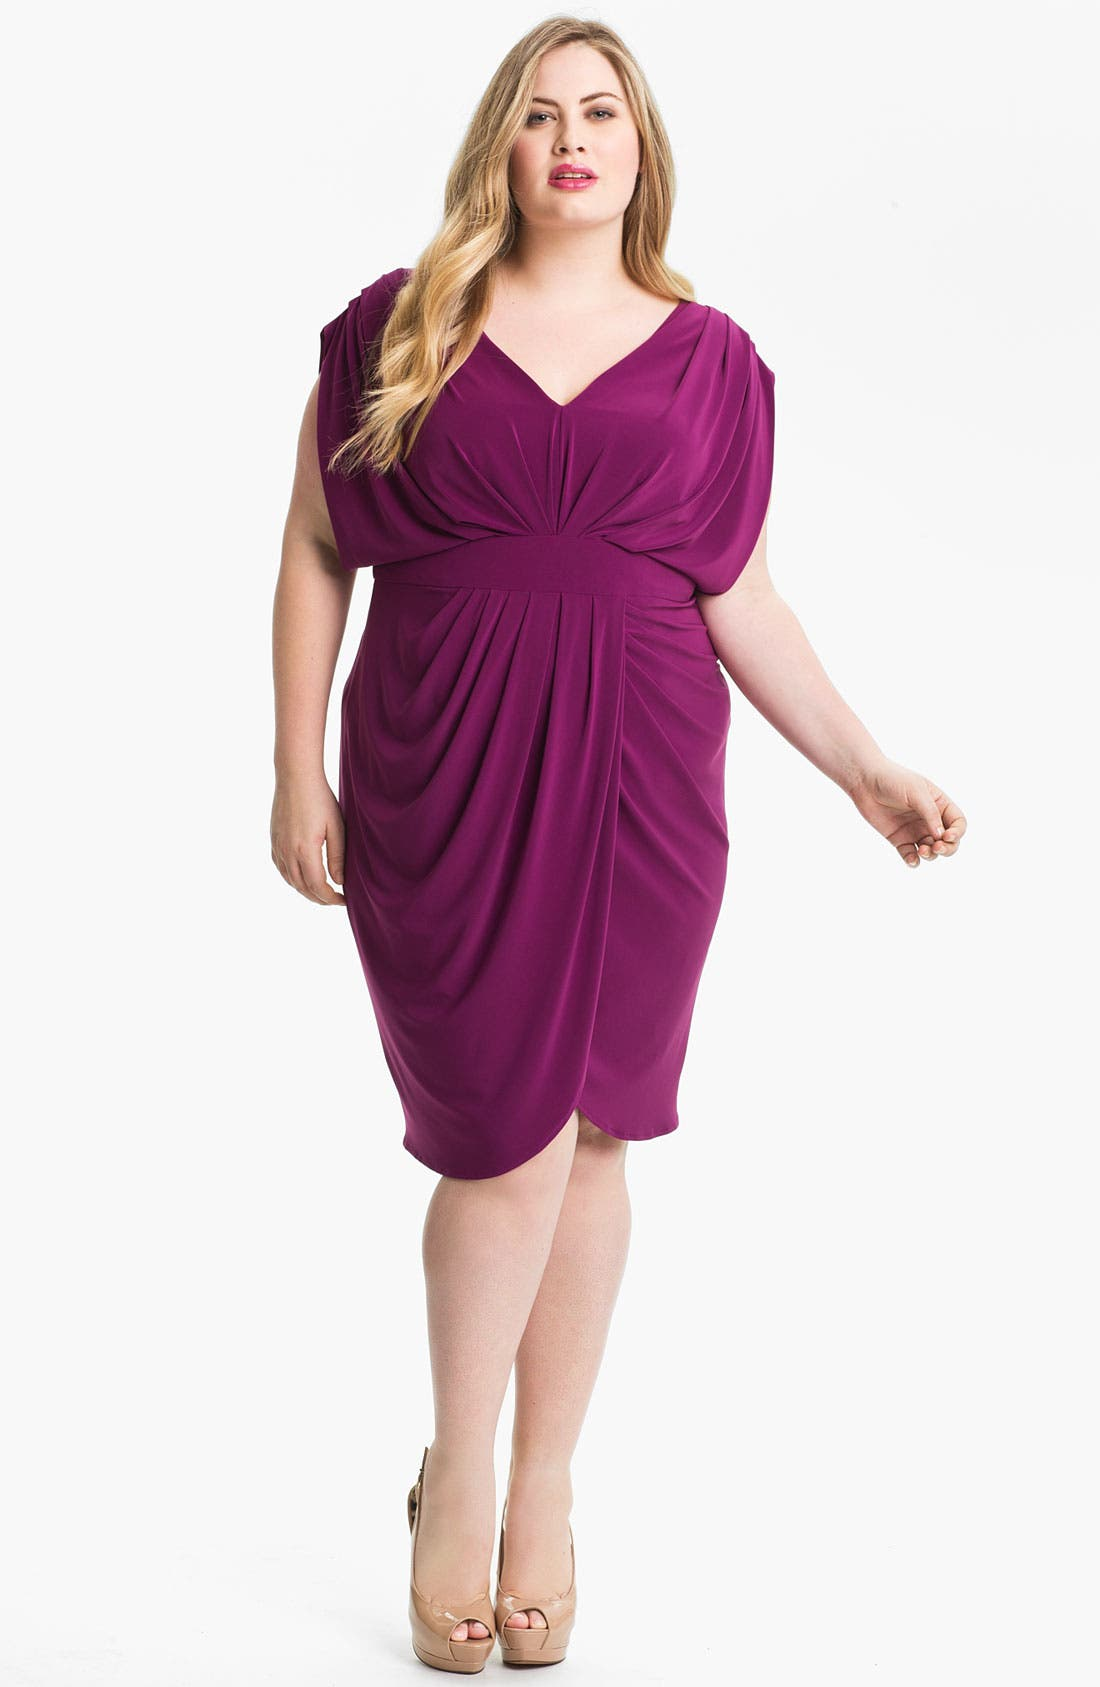 Alternate Image 1 Selected - Suzi Chin for Maggy Boutique V-Neck Faux Wrap Jersey Dress (Plus Size)